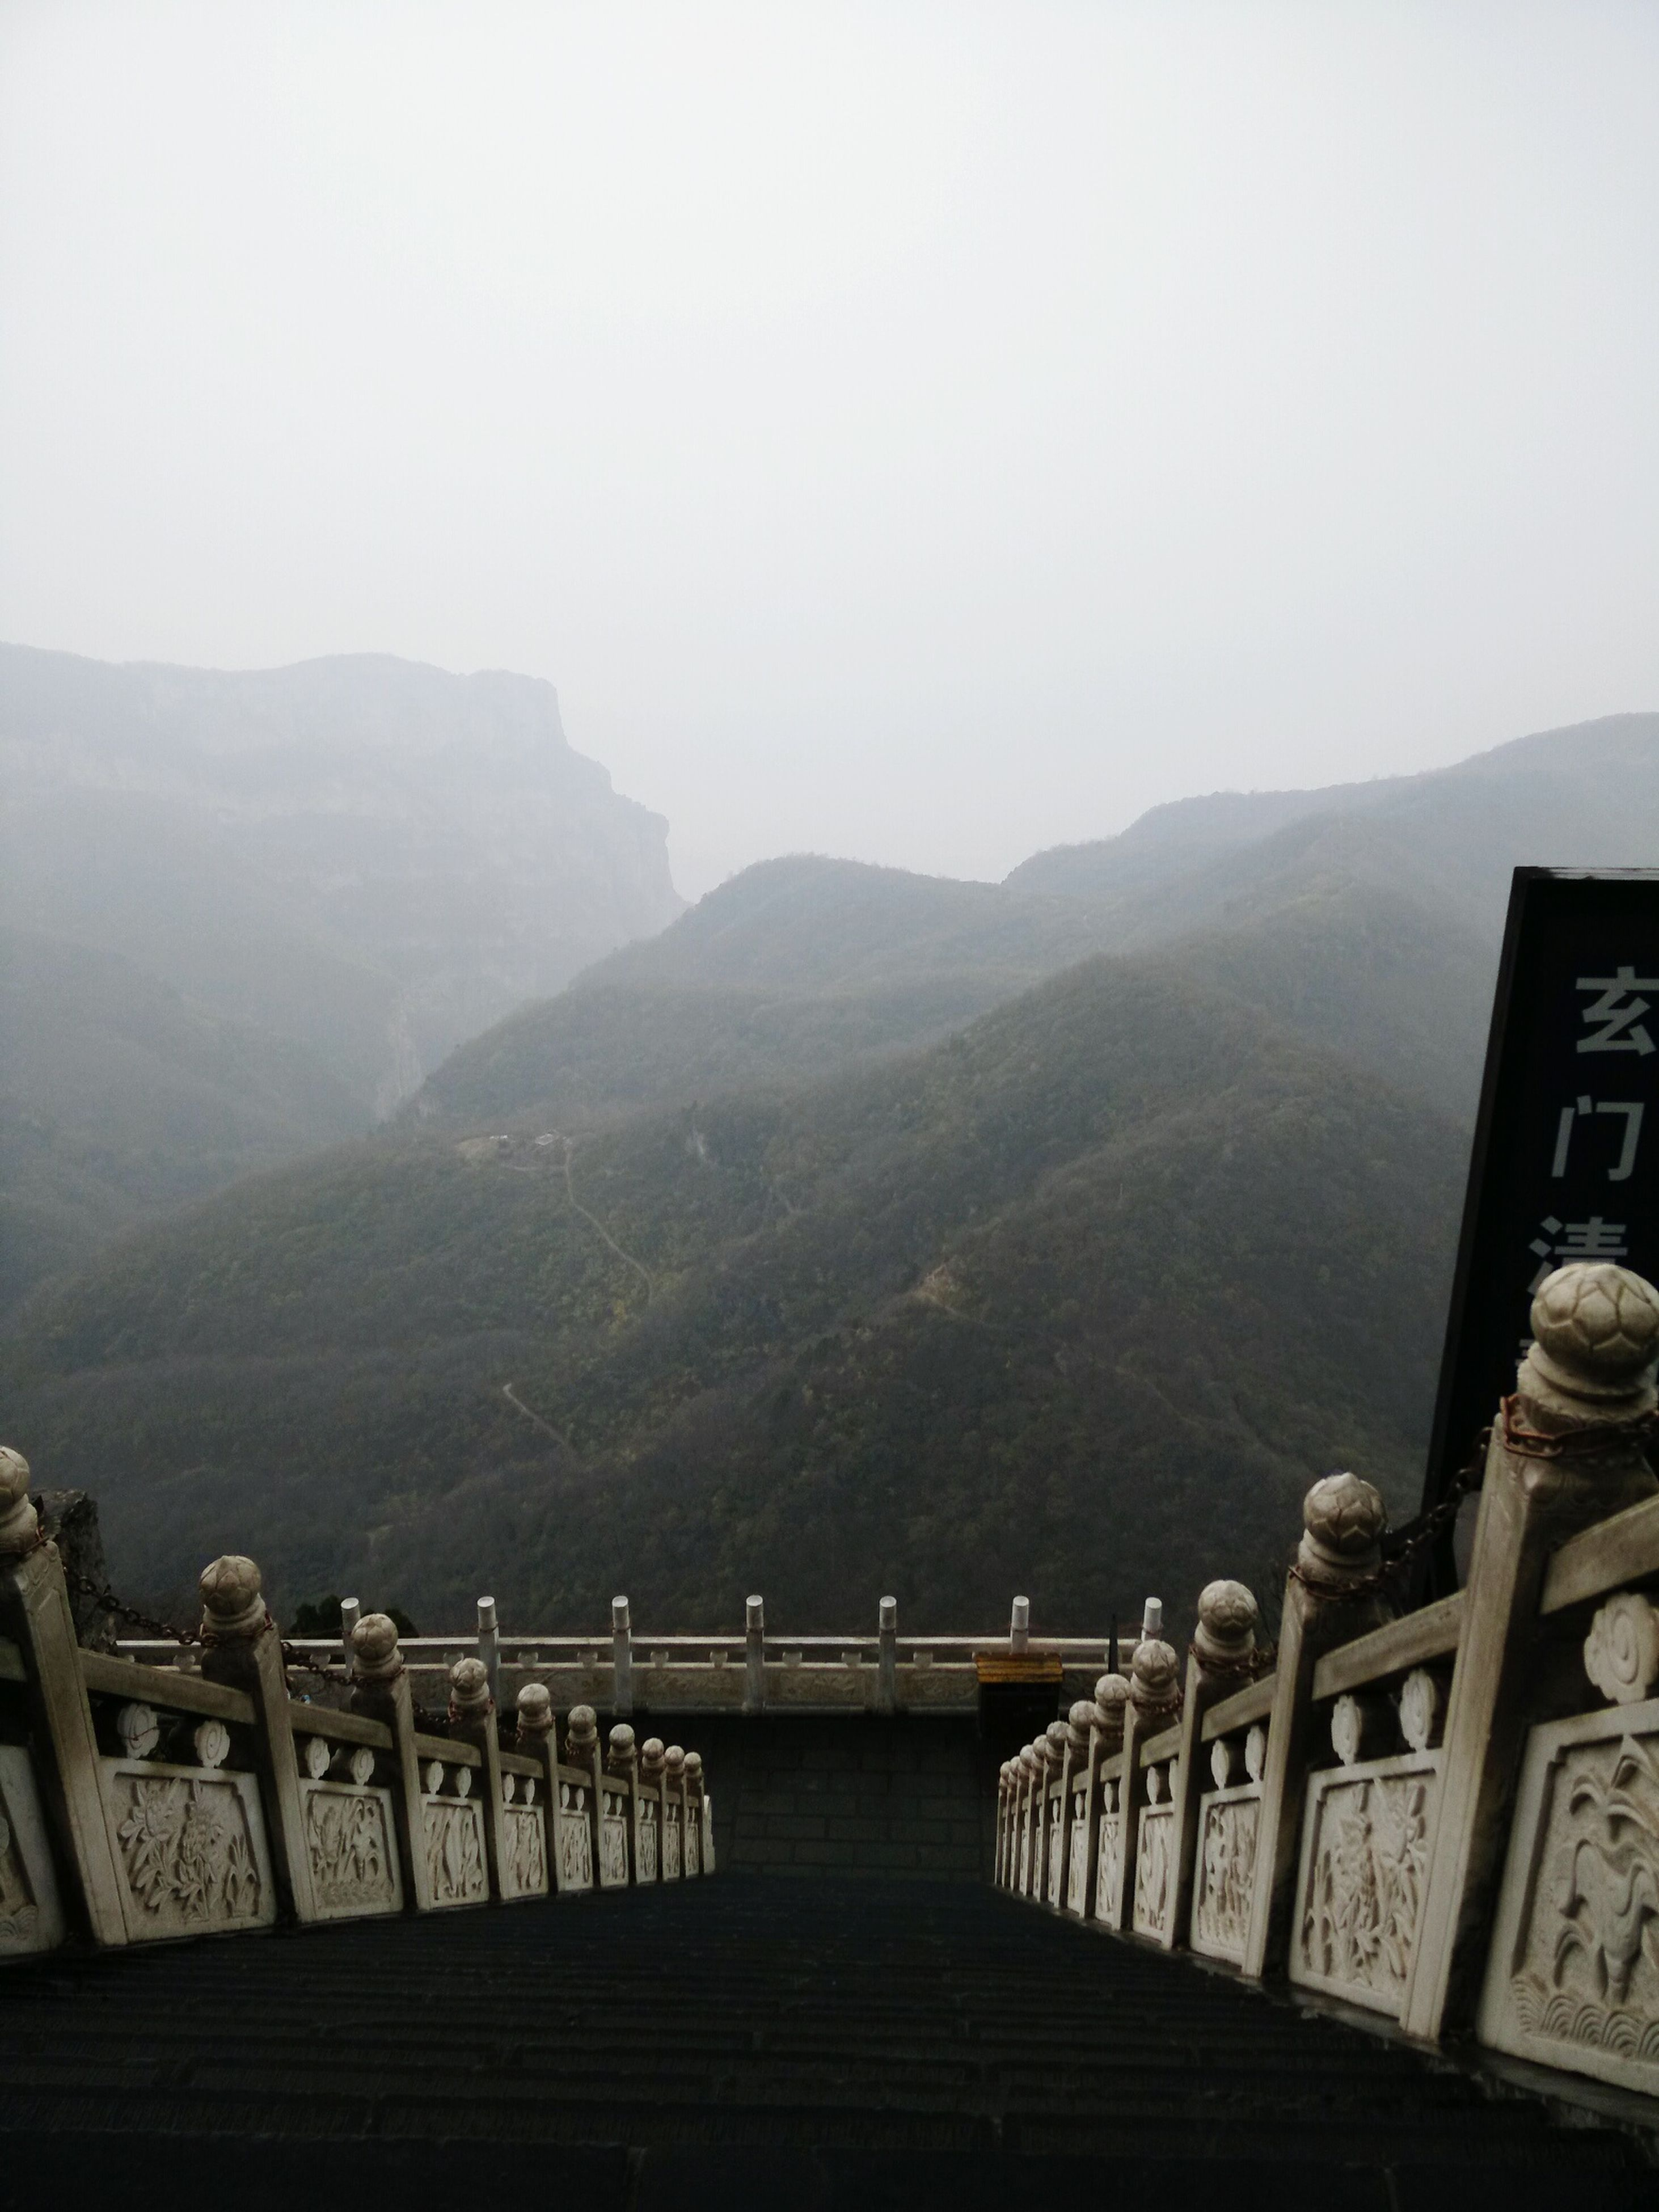 mountain, mountain range, railing, fog, scenics, tranquility, tranquil scene, built structure, beauty in nature, architecture, copy space, nature, sky, observation point, foggy, day, water, landscape, idyllic